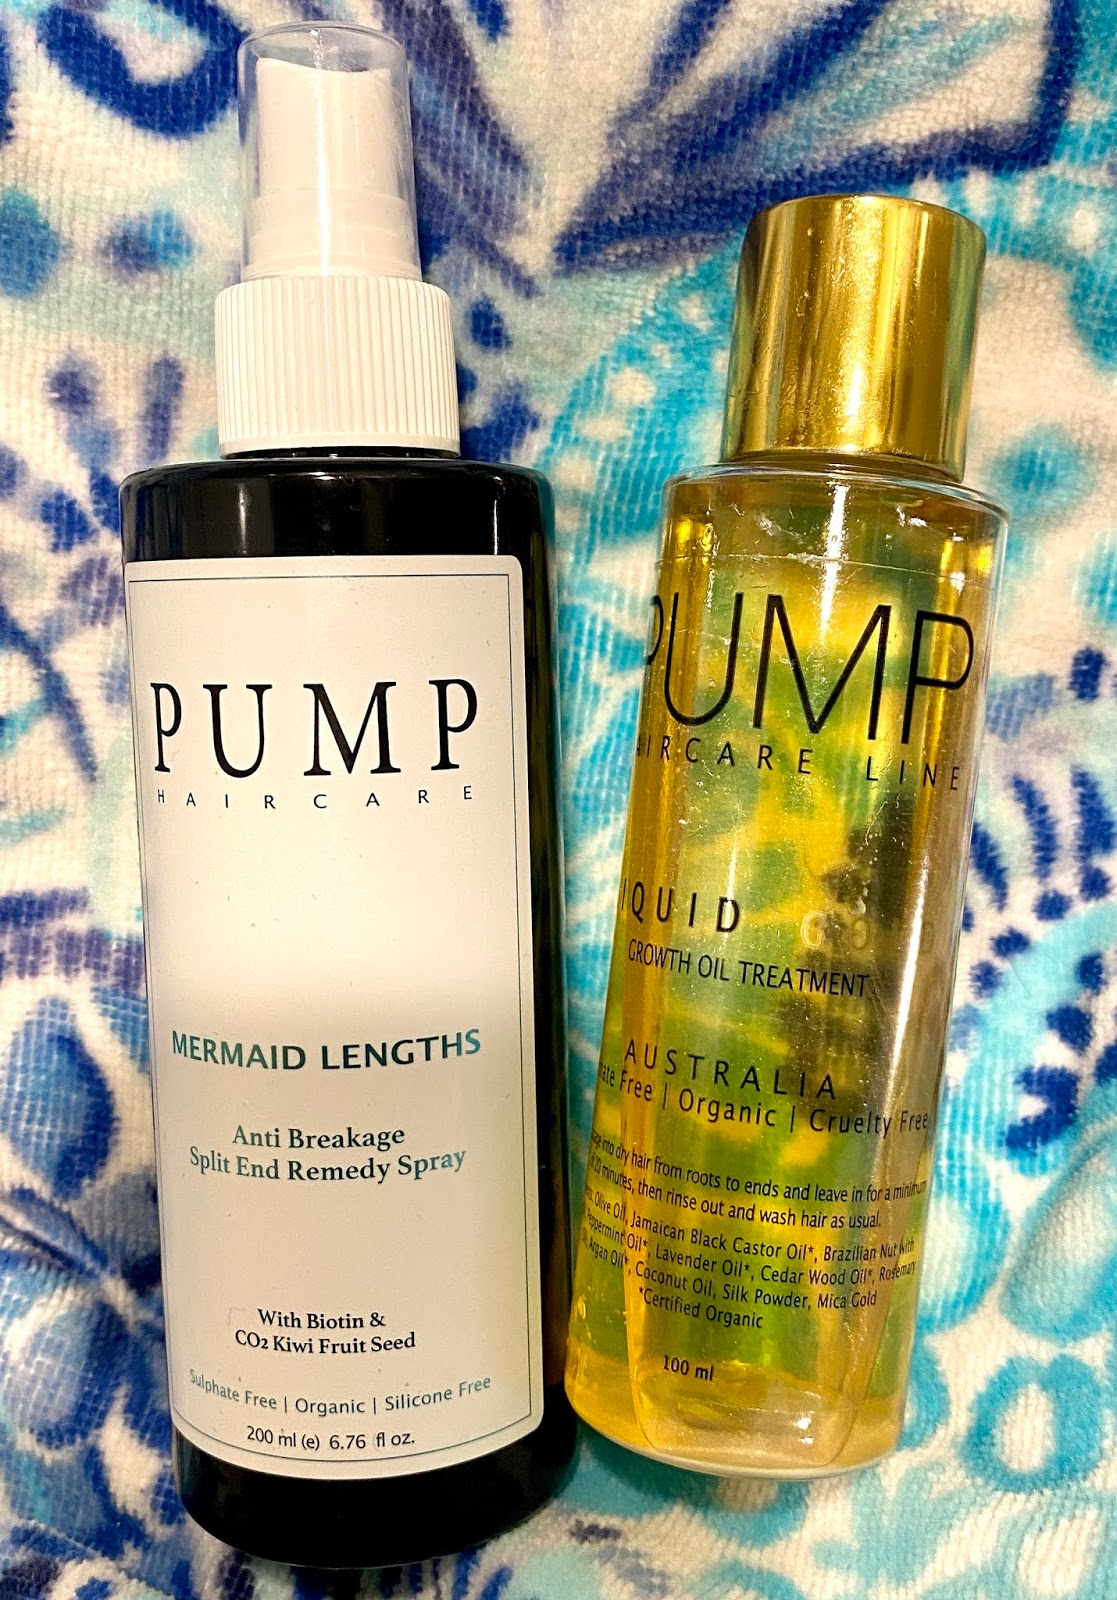 Pump Haircare Mermaid Lengths And Oil Diane Mary S Take On Beauty